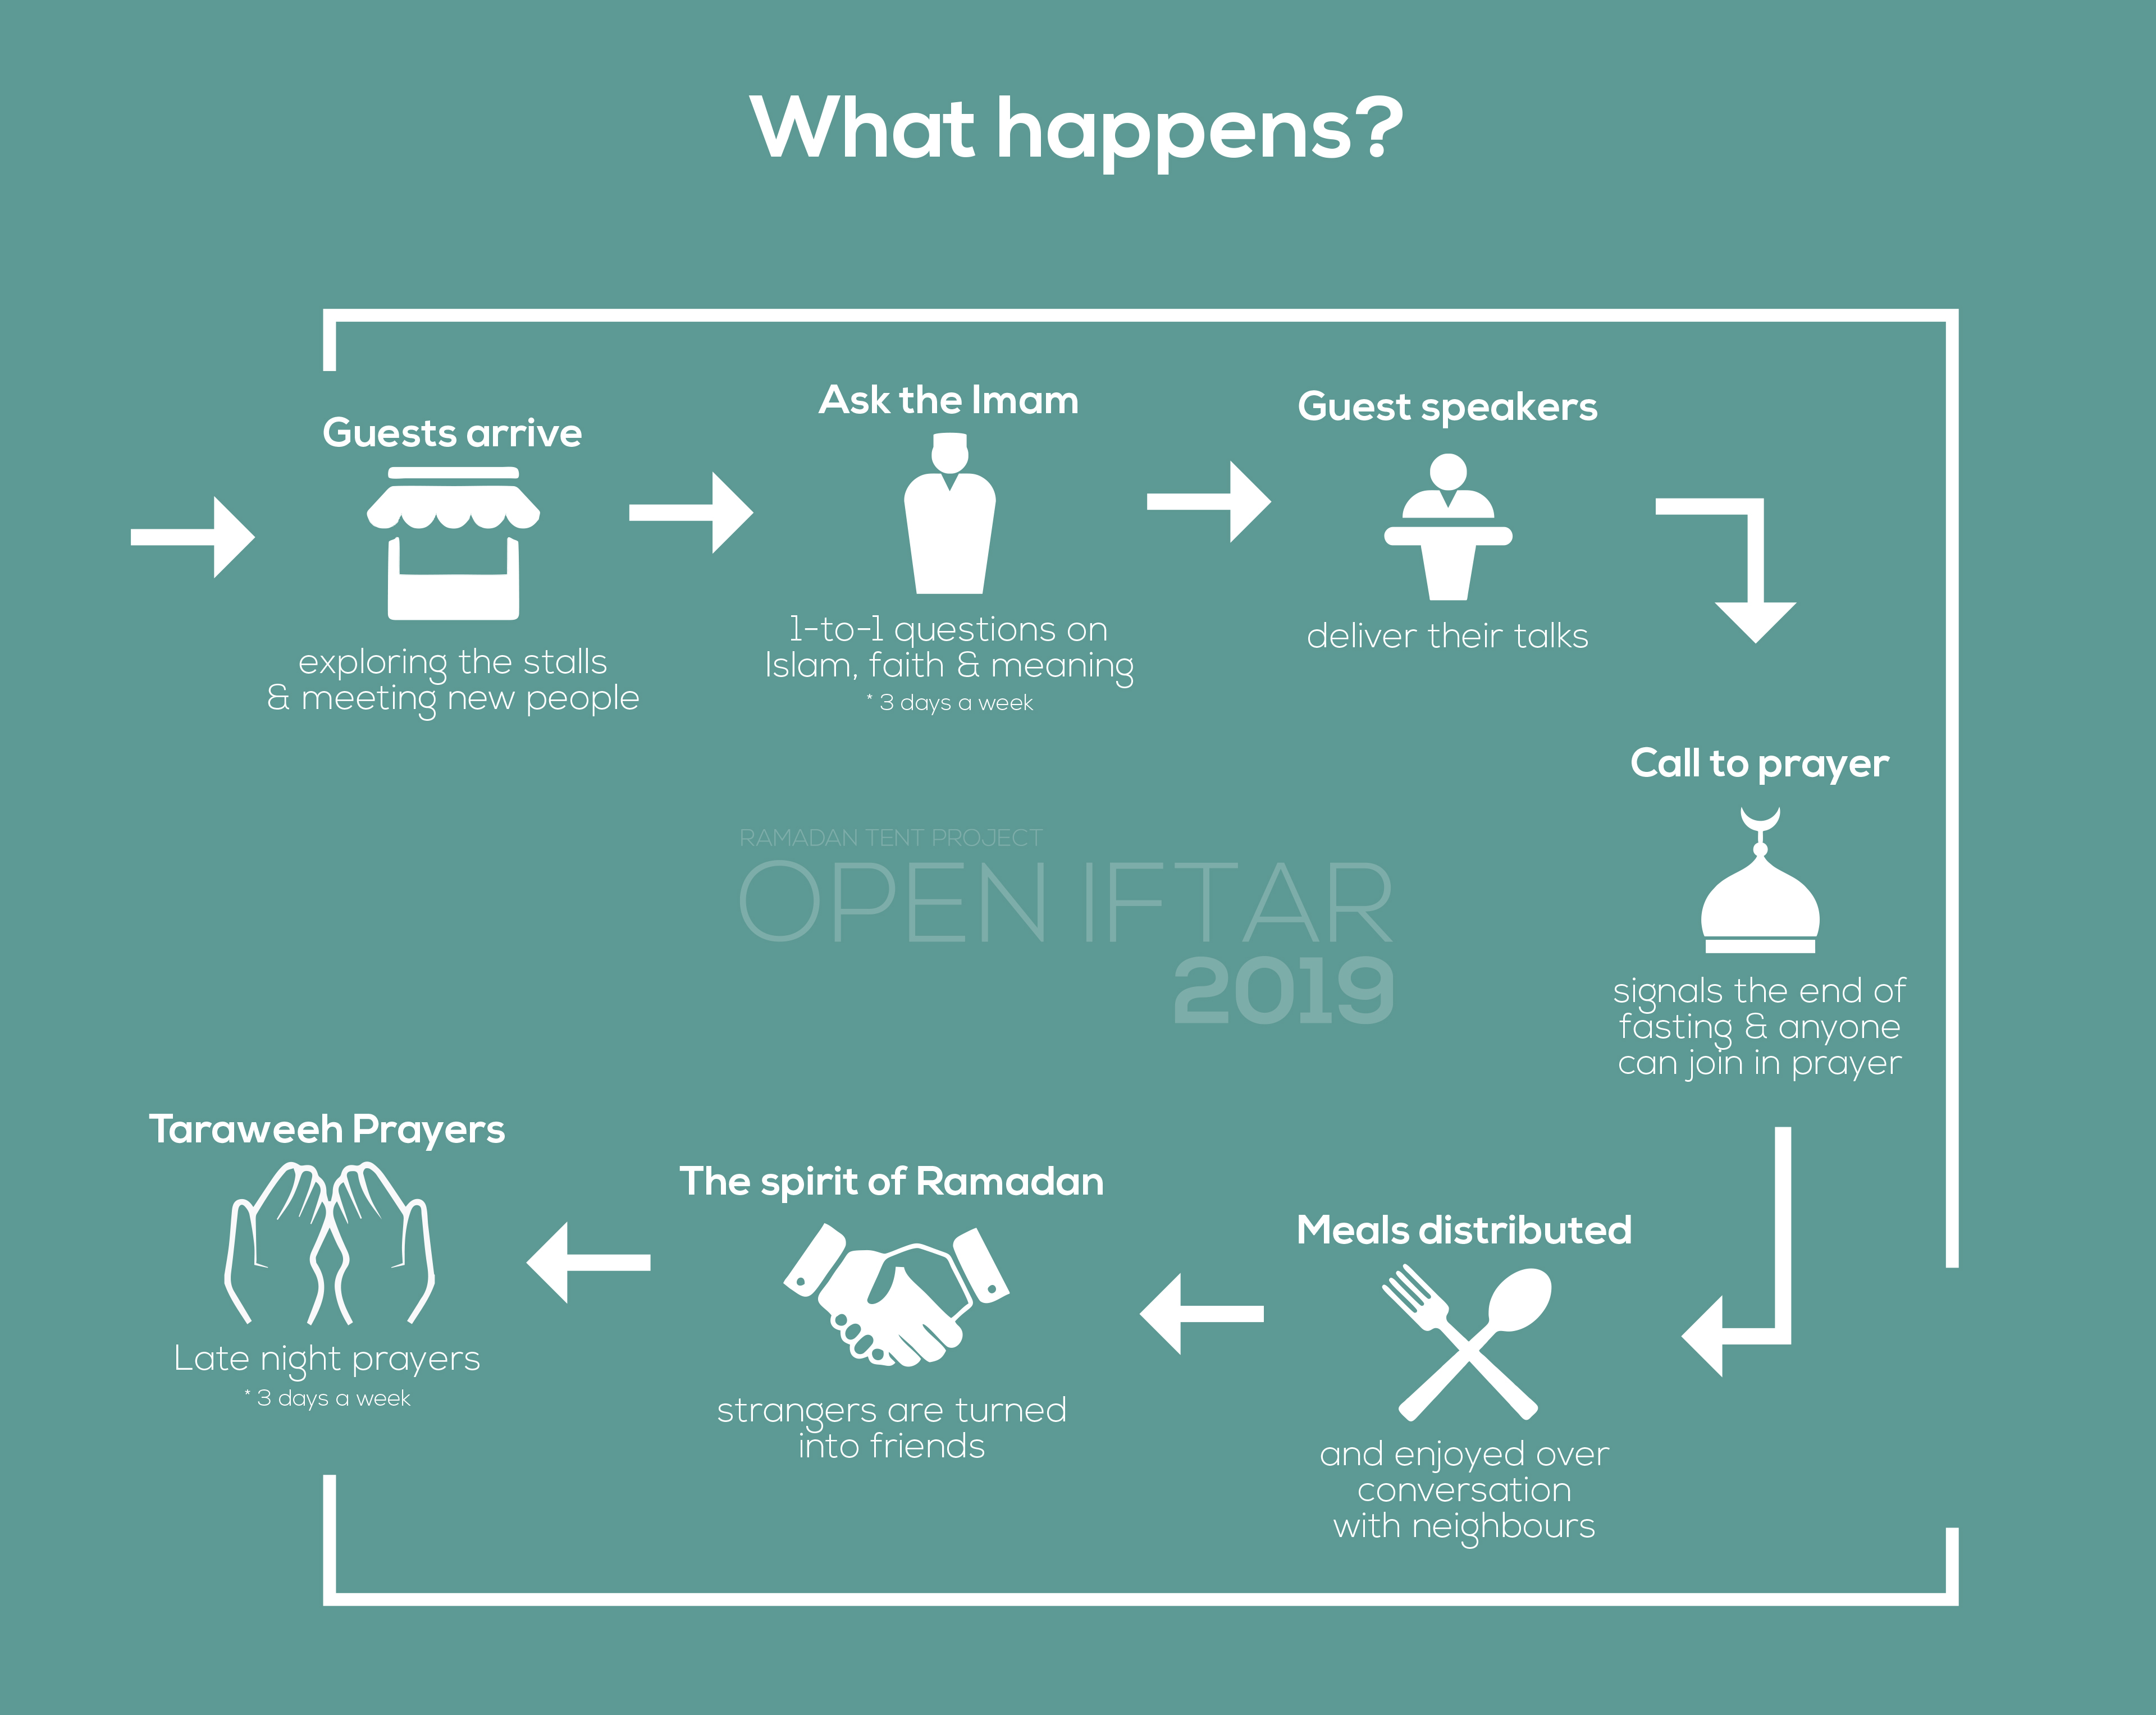 Projects | Open Iftar 2019 | LaunchGood